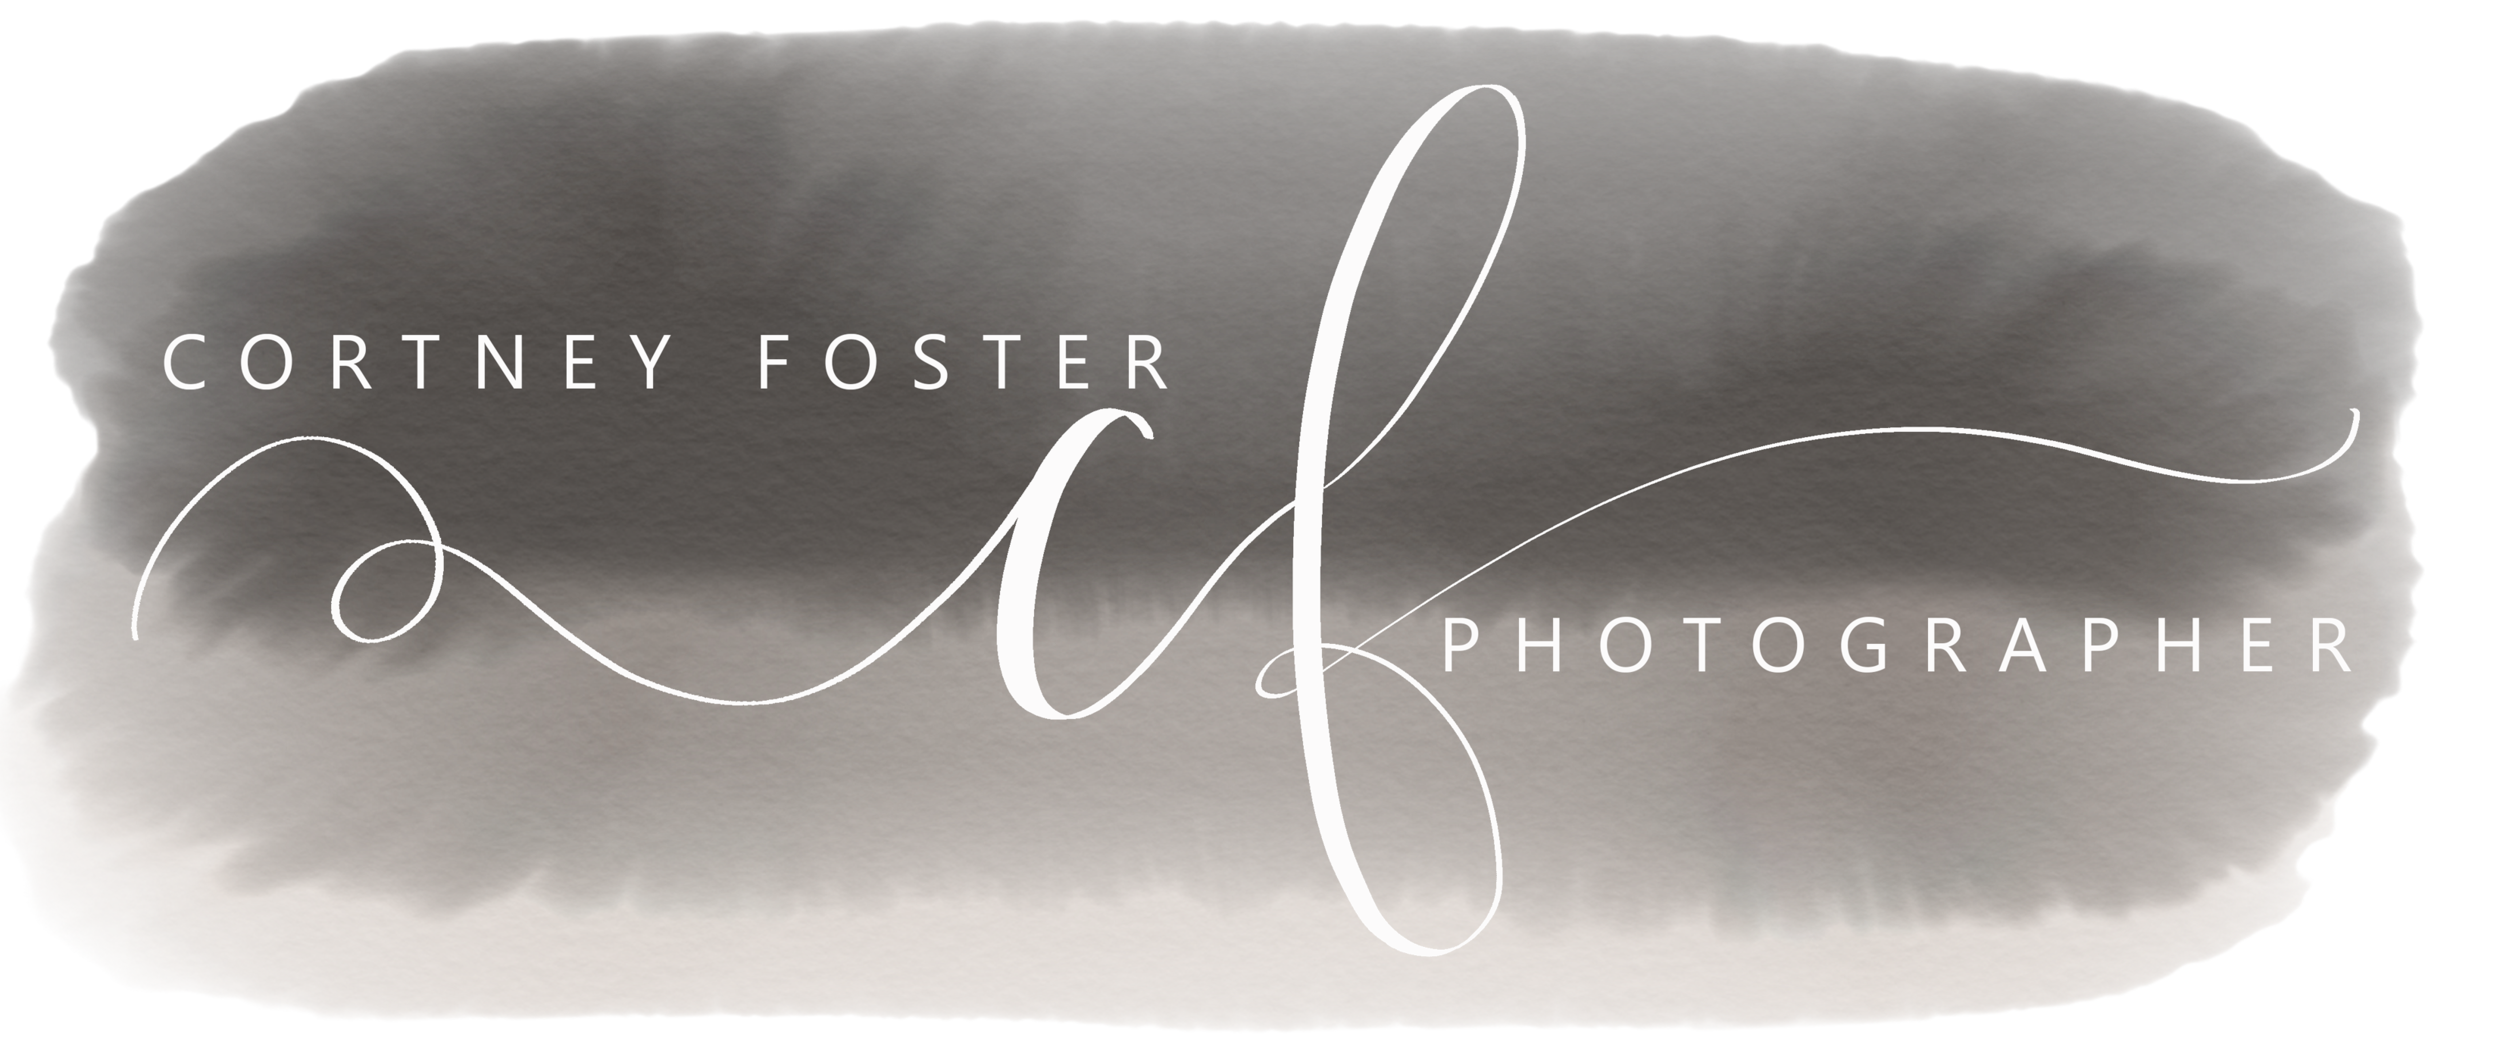 Cortney Foster, Montana Photographer